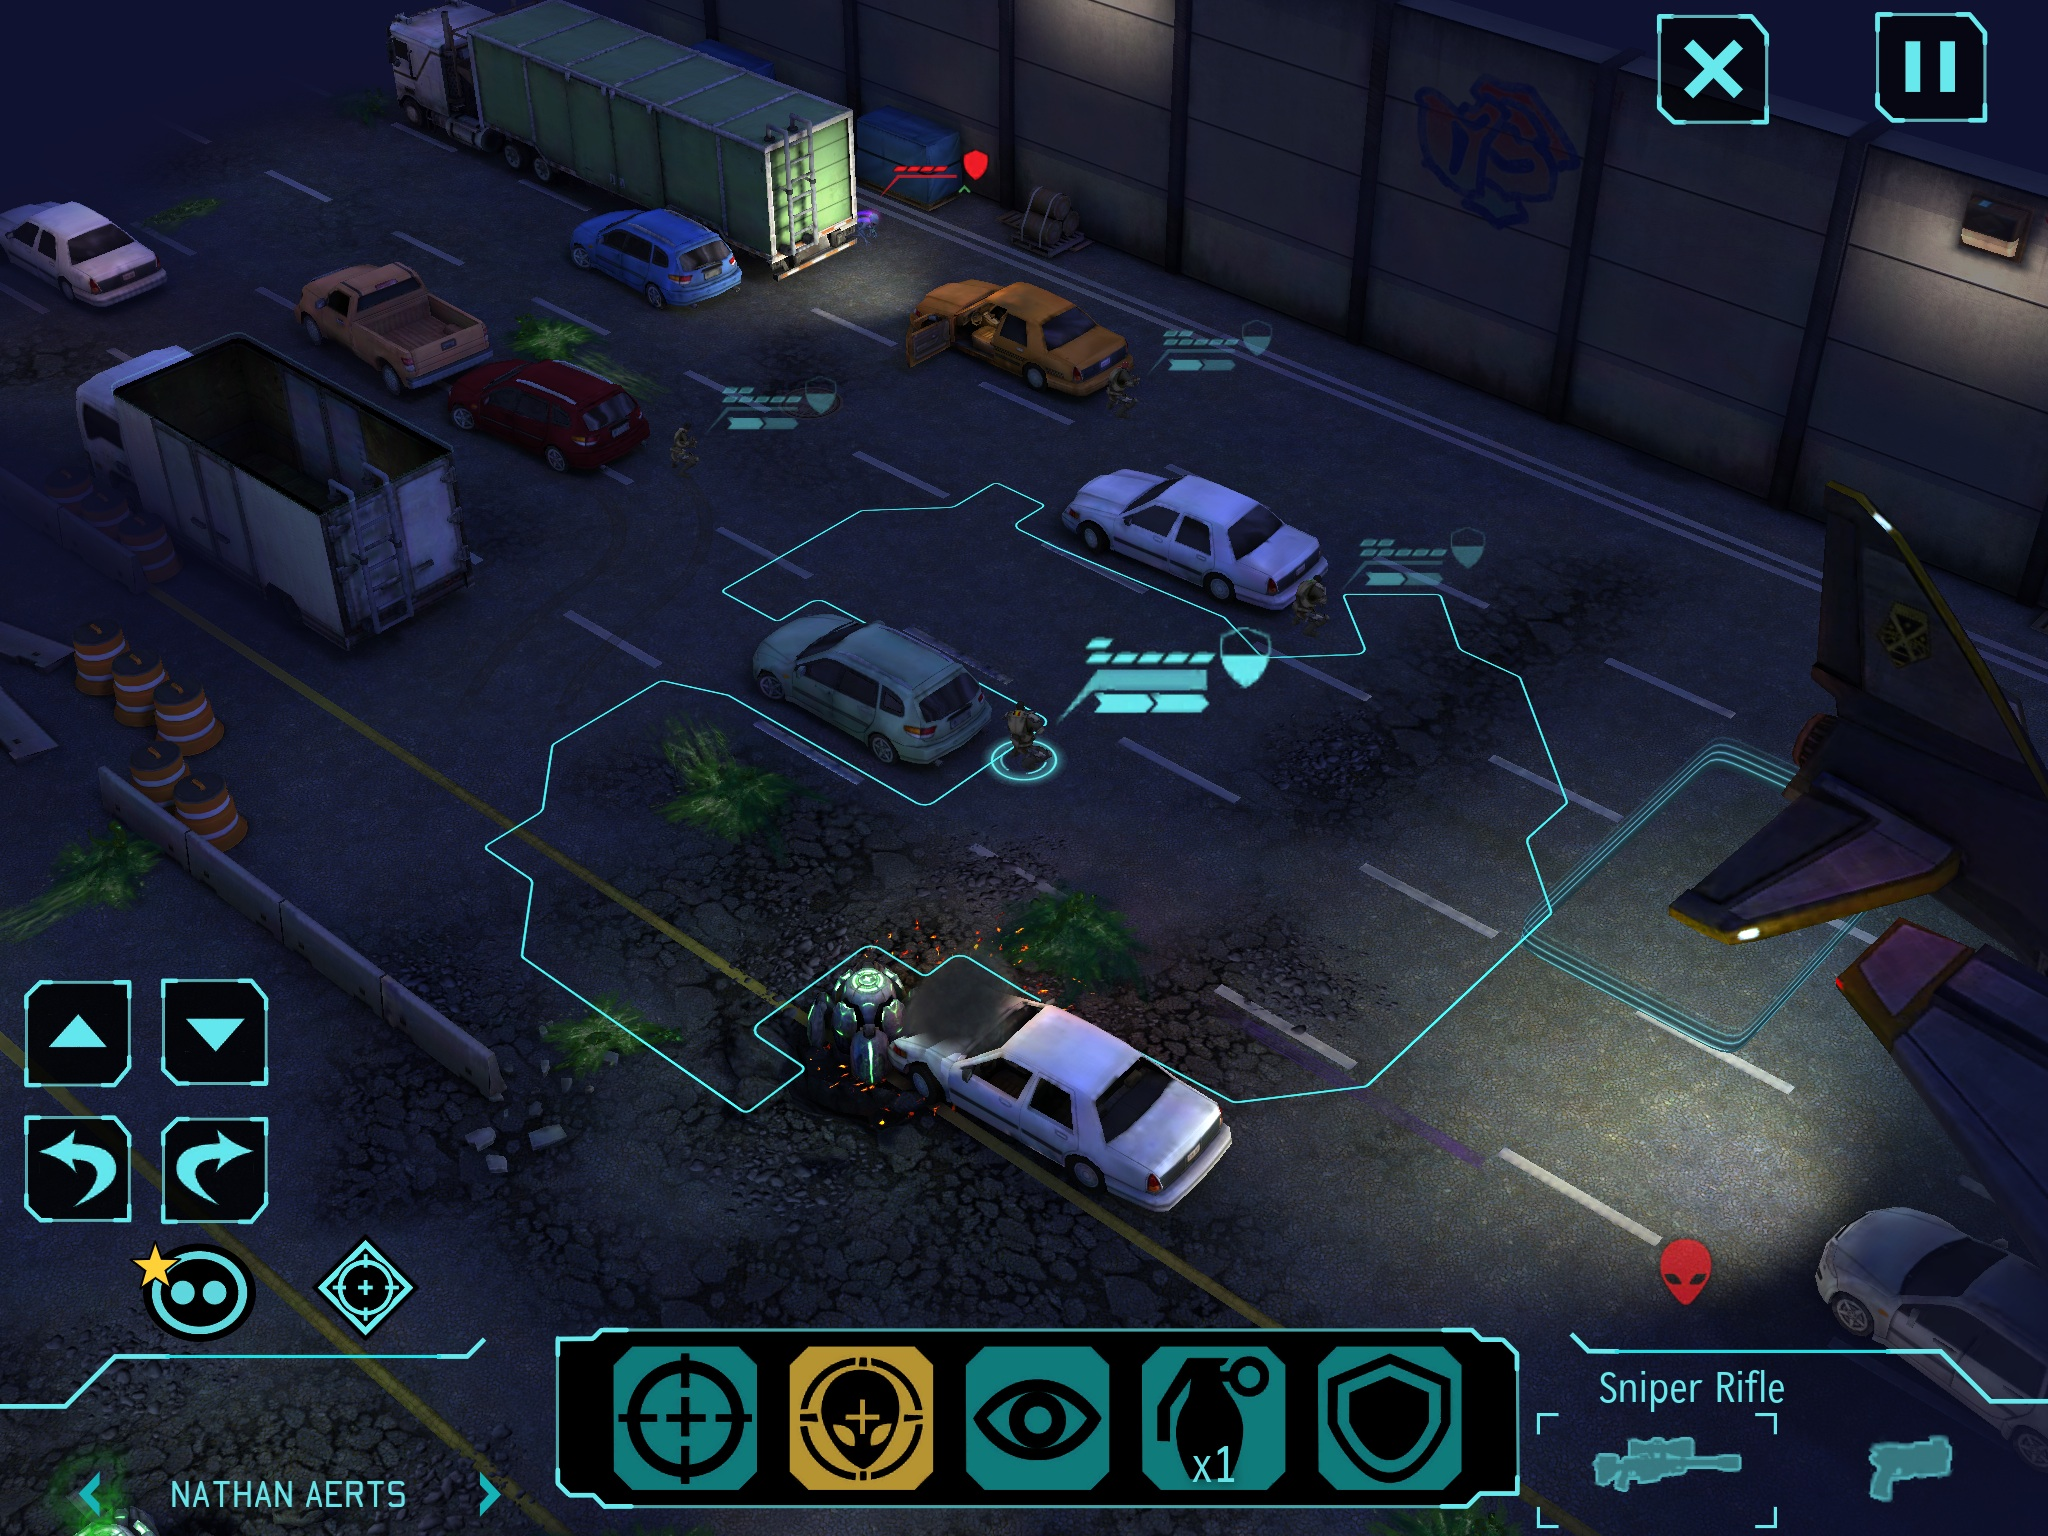 'XCOM: Enemy Unknown' Review - AAA Comes to the App Store, Buy This Game Now